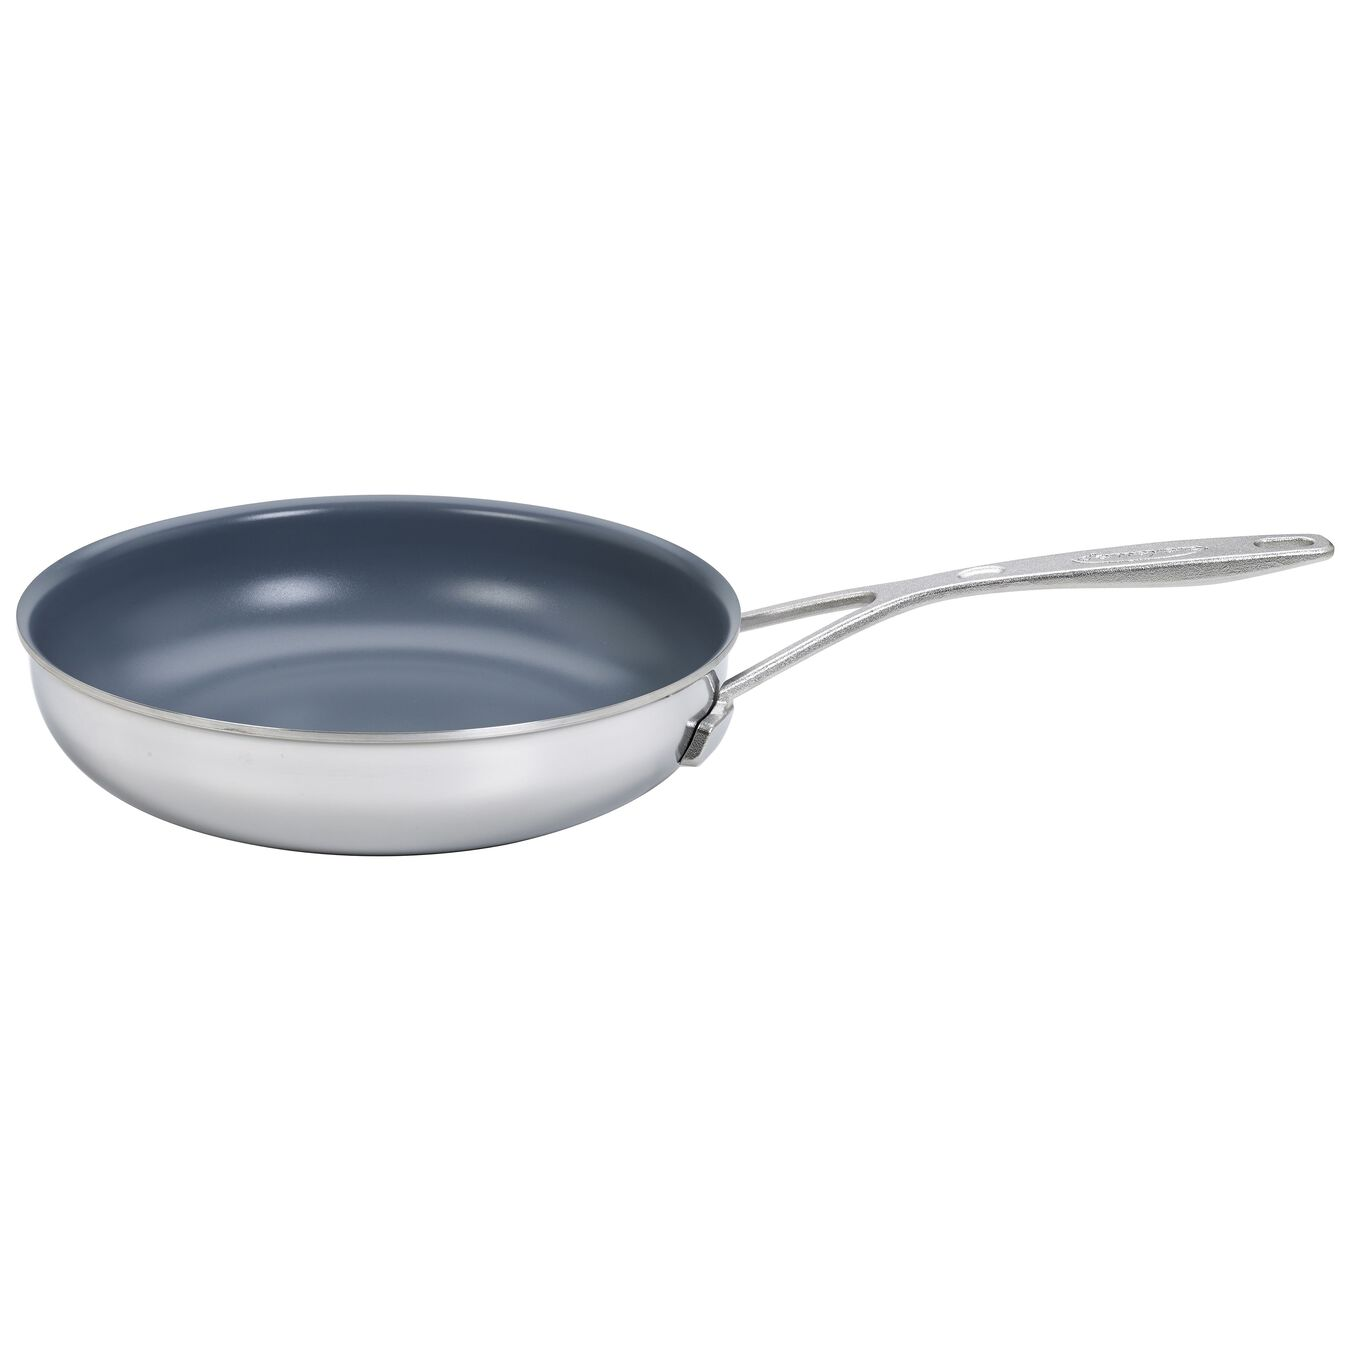 8-inch, 18/10 Stainless Steel, Ceramic, Frying pan,,large 1